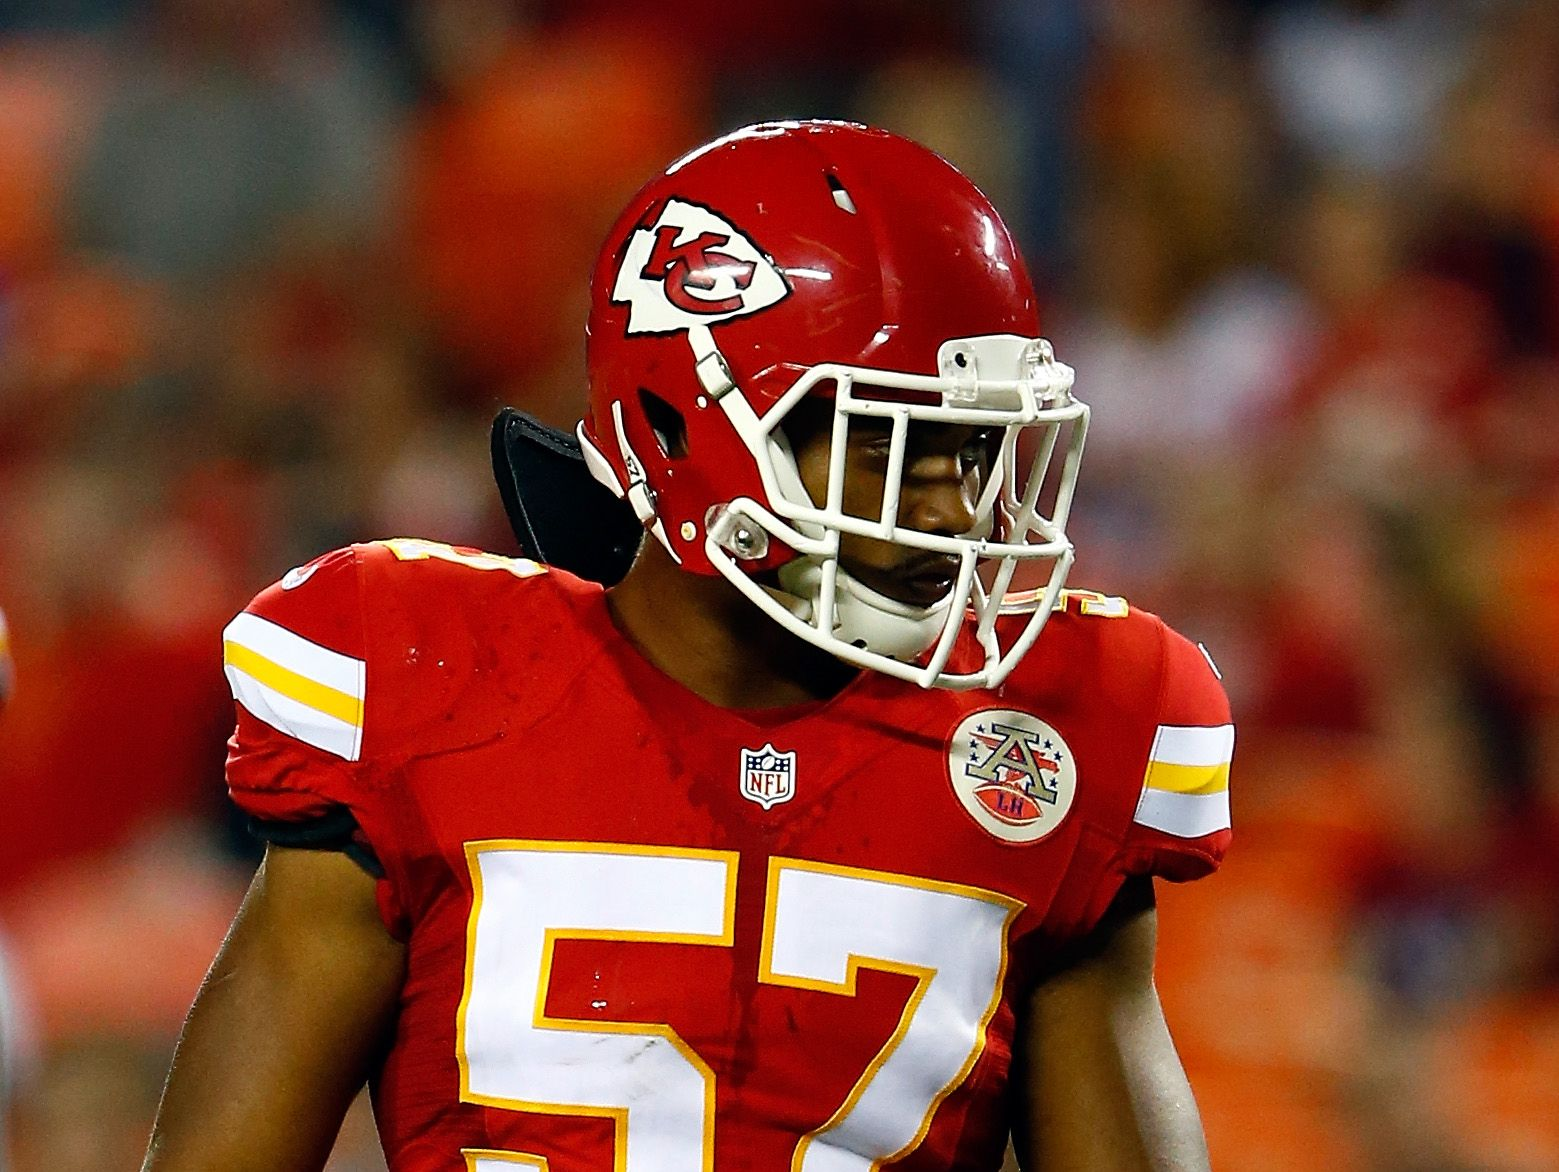 Linebacker D.J. Alexander of the Kansas City Chiefs has been nominated for the NFL's Pro Bowl.